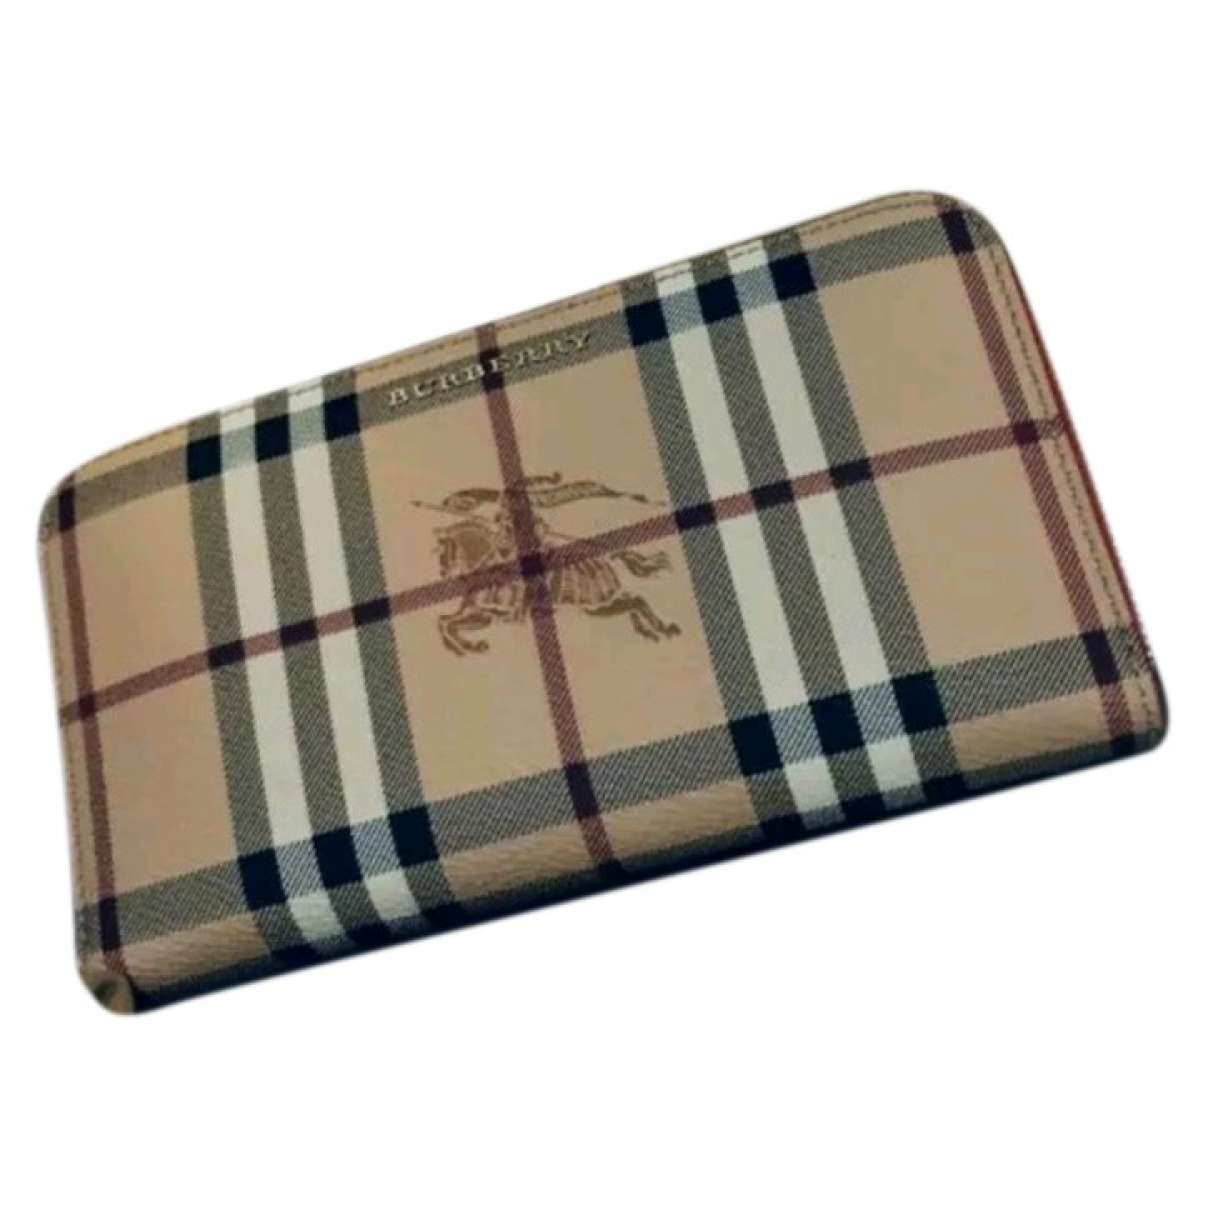 Burberry N Multicolour Cloth wallet for Women N